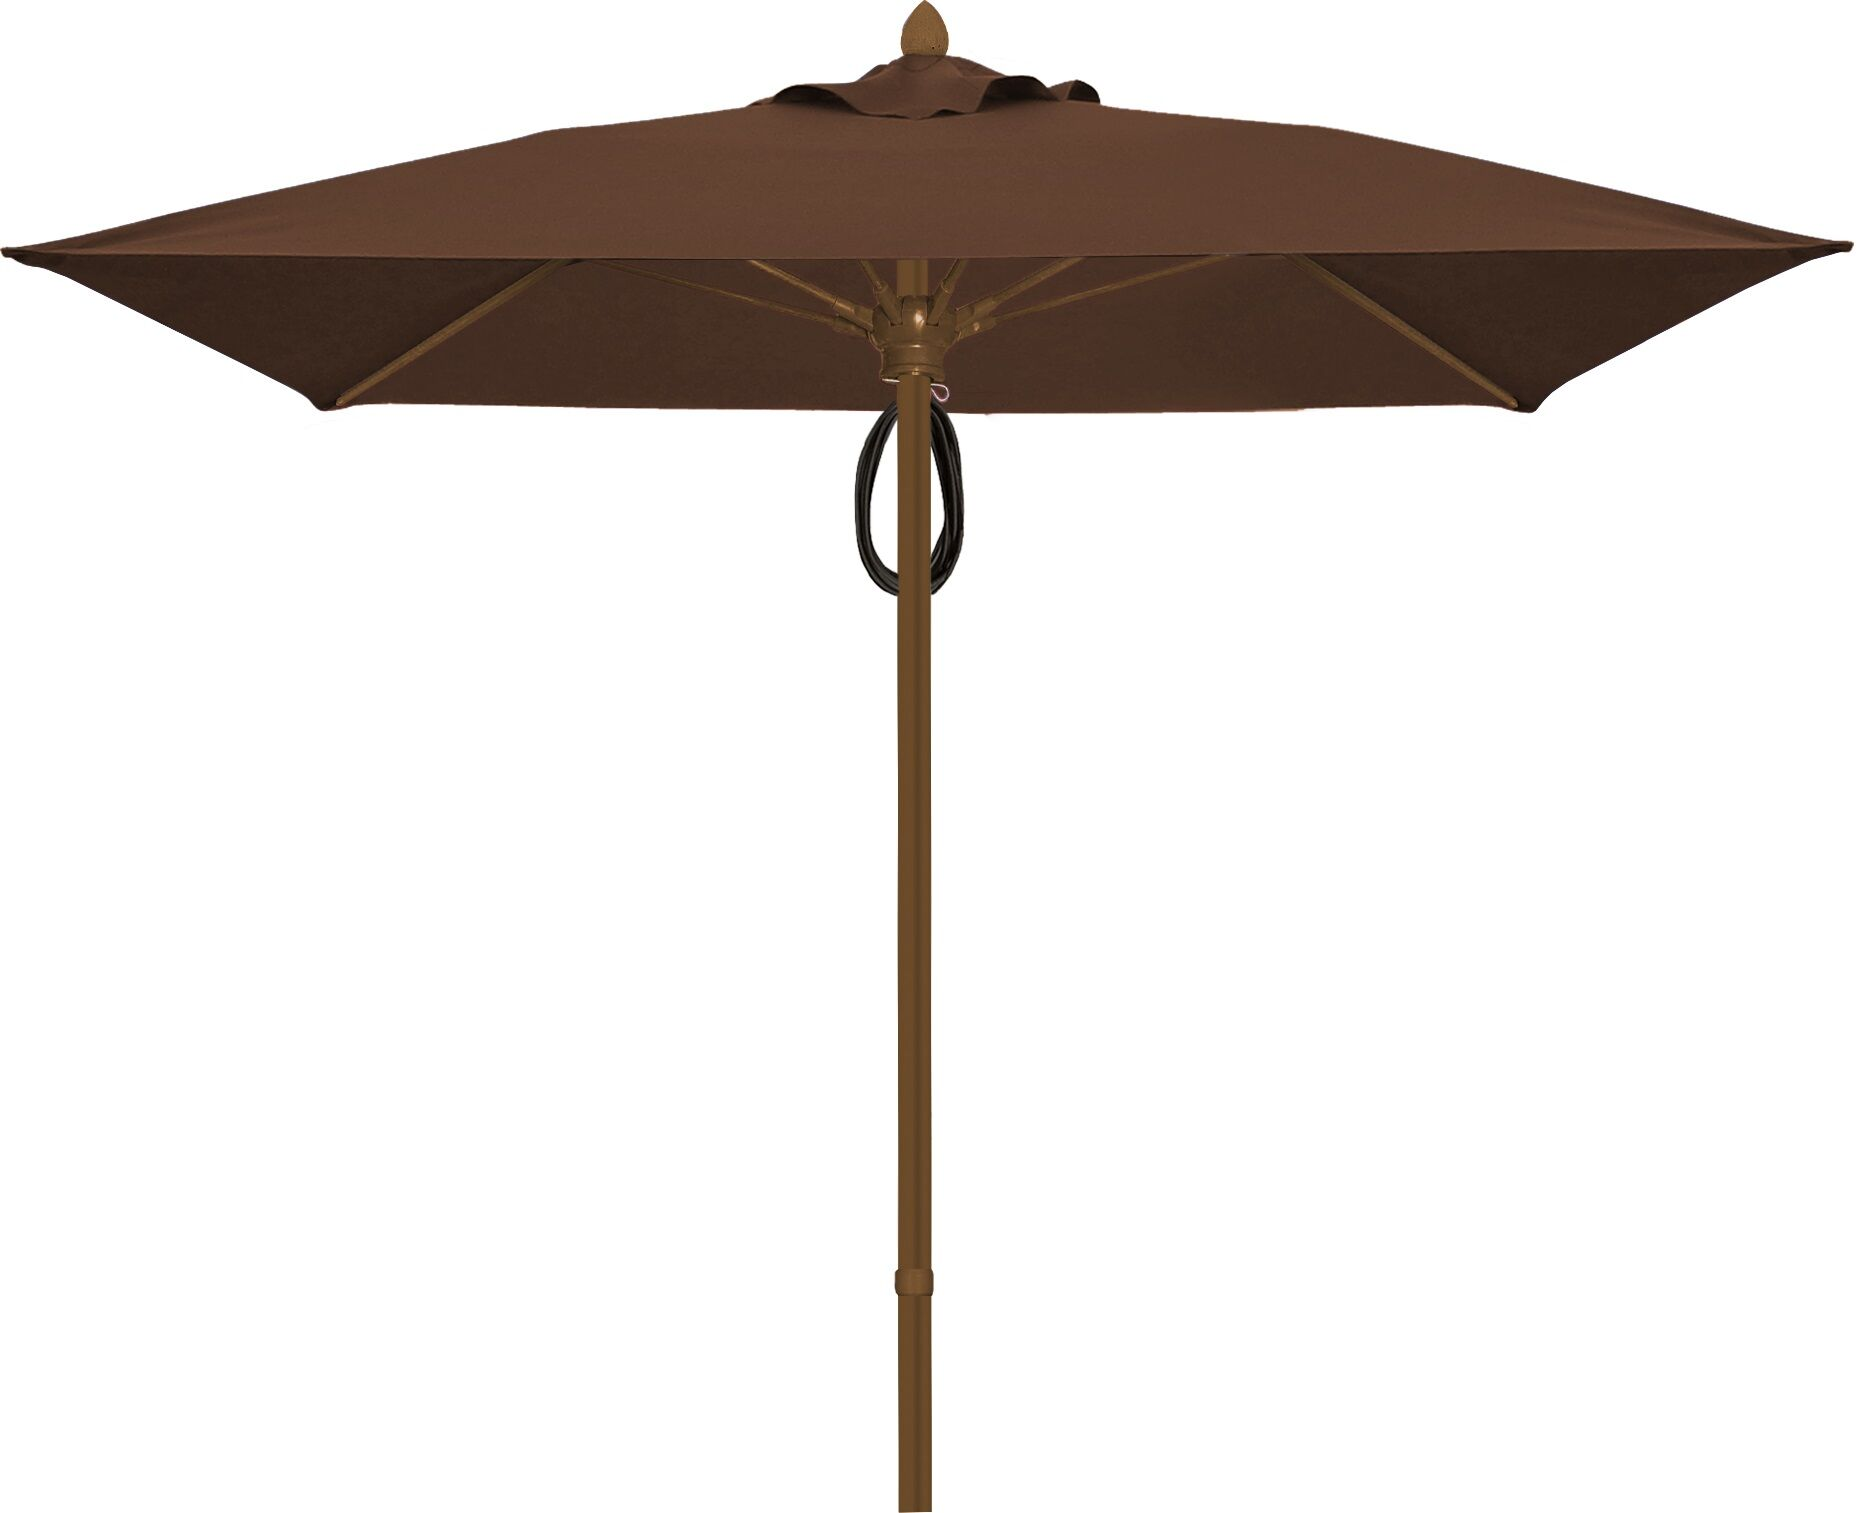 Prestige 7.5' Square Market Umbrella Frame Finish: White, Fabric: True Brown